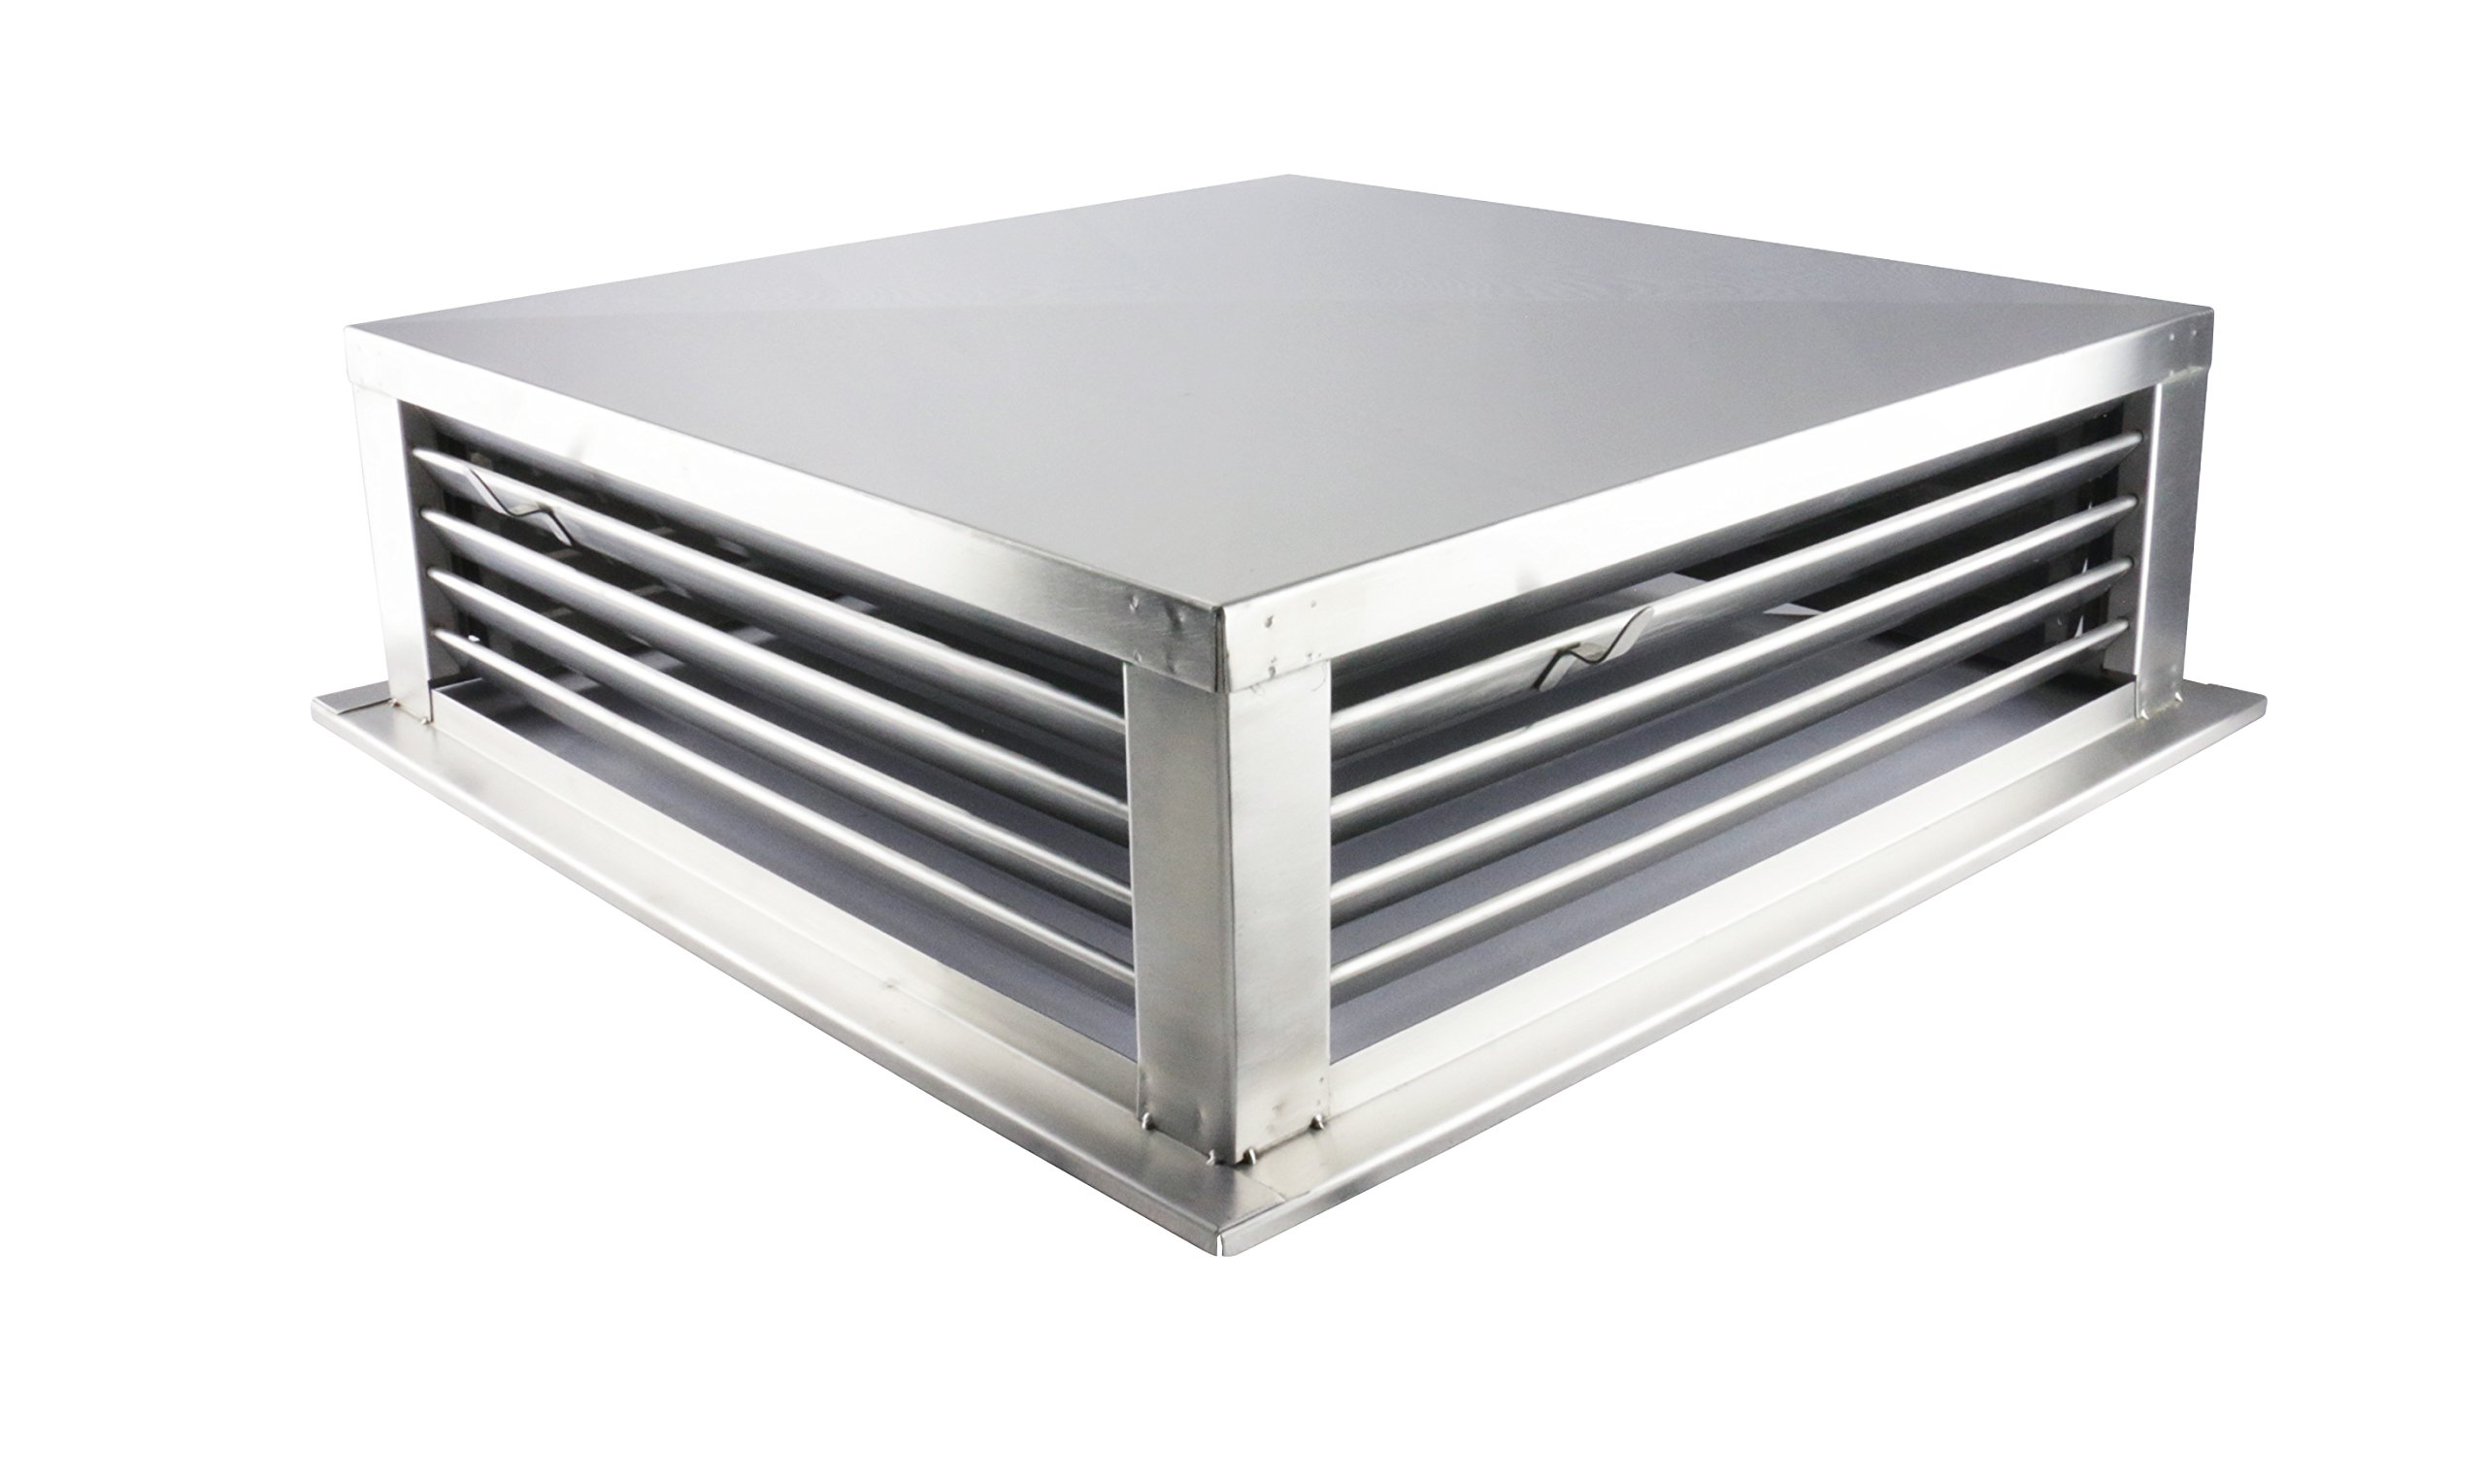 18'' Stainless Steel Diffuser for Evaporative/Swamp Cooler, DF-18S